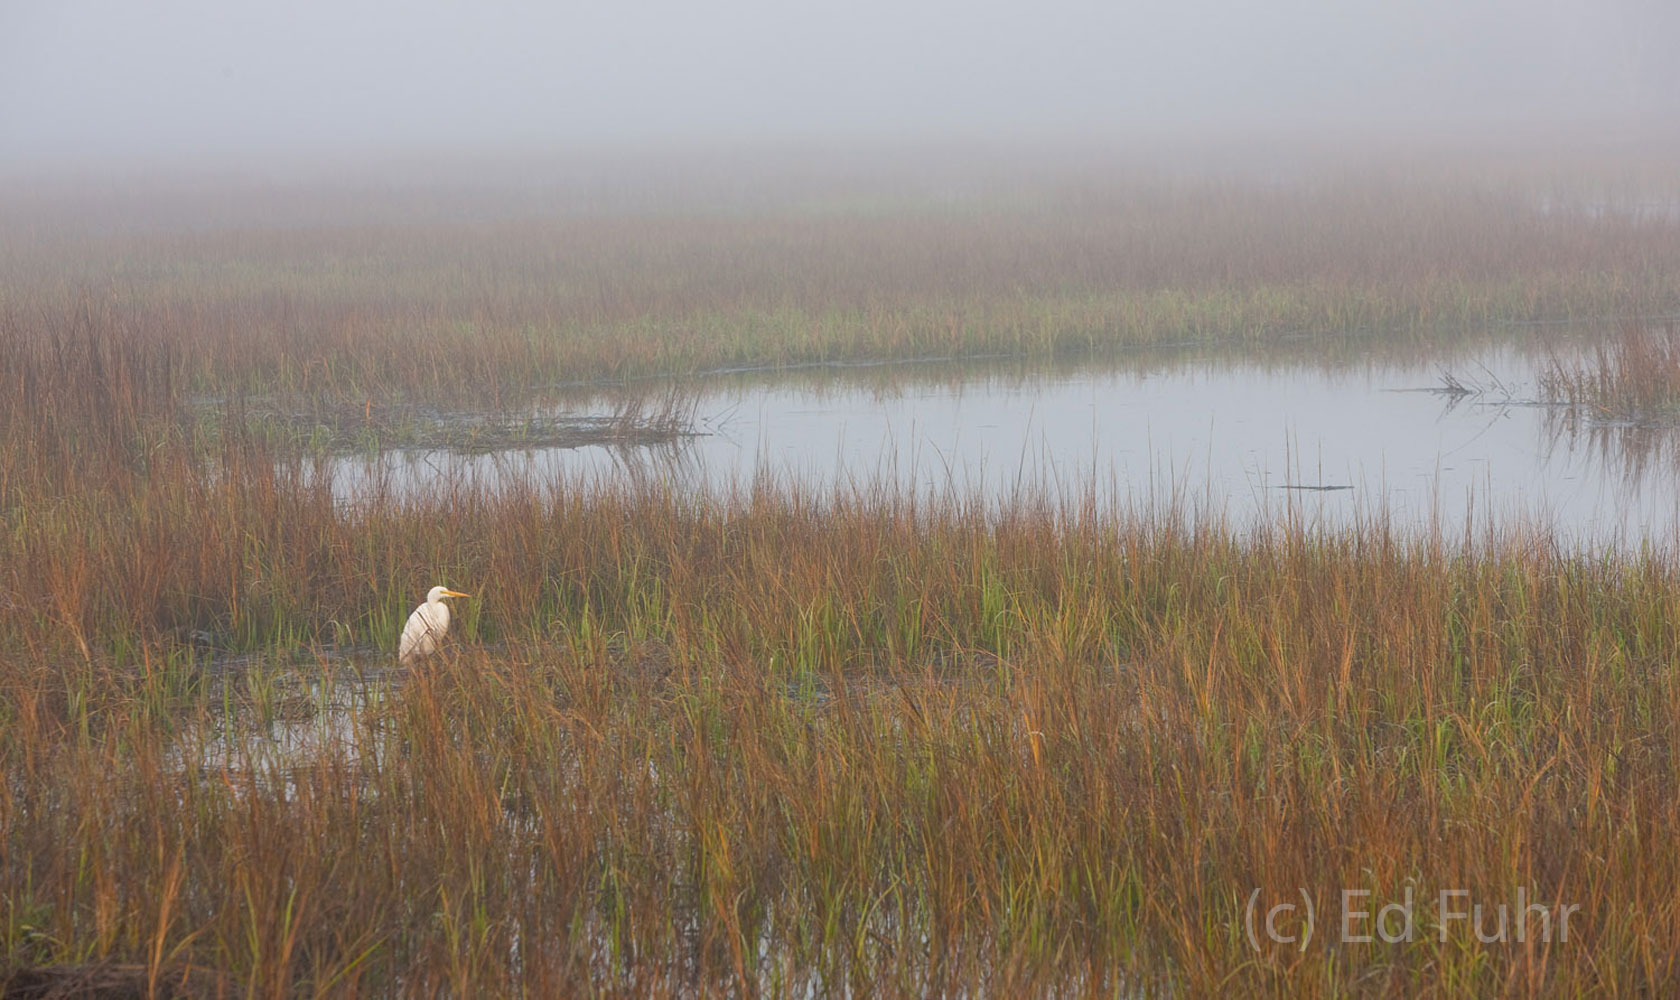 kiawah island, south carolina, low country, beach, photography, image